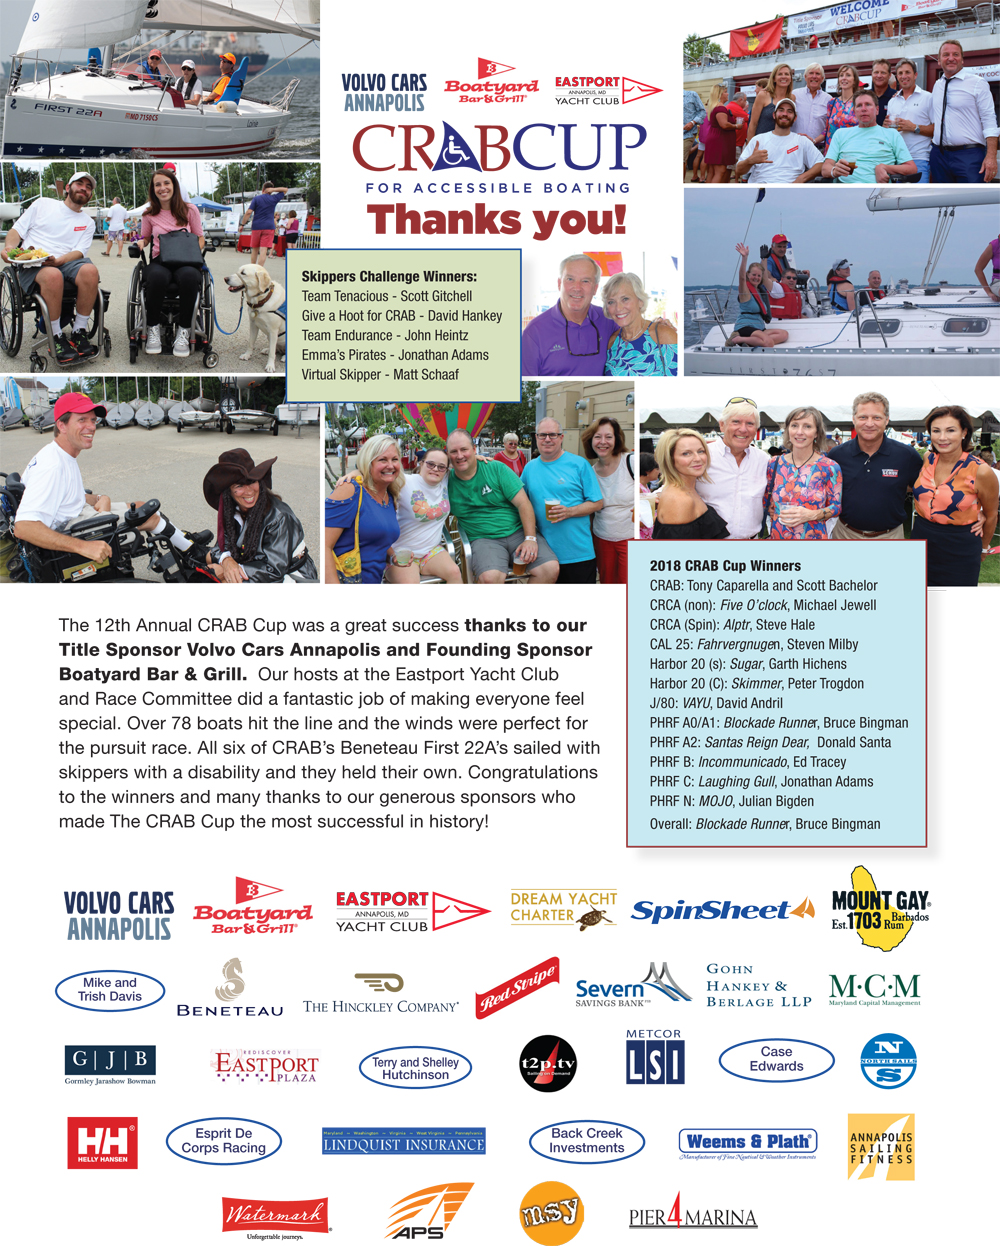 Boatyard CRAB Cup sponsor thanks